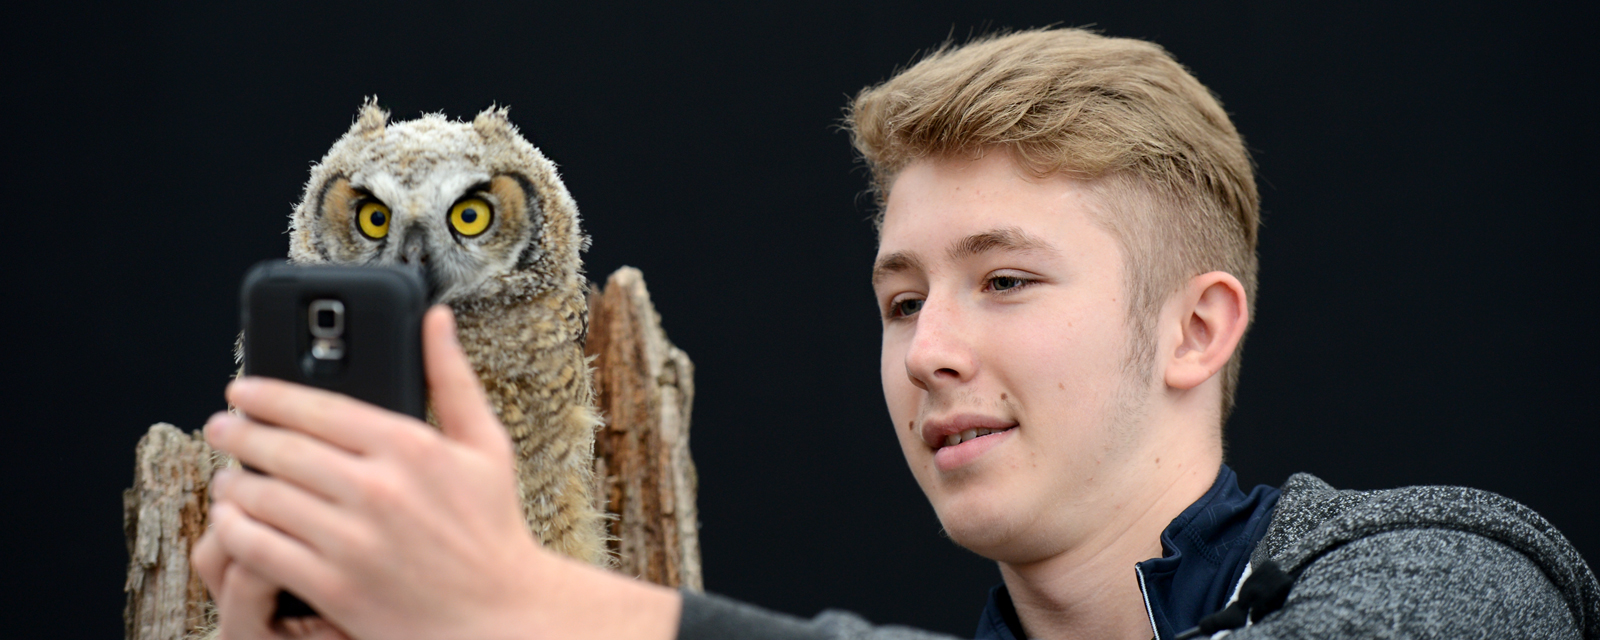 Teenage boy takeing a selfie with a baby owl